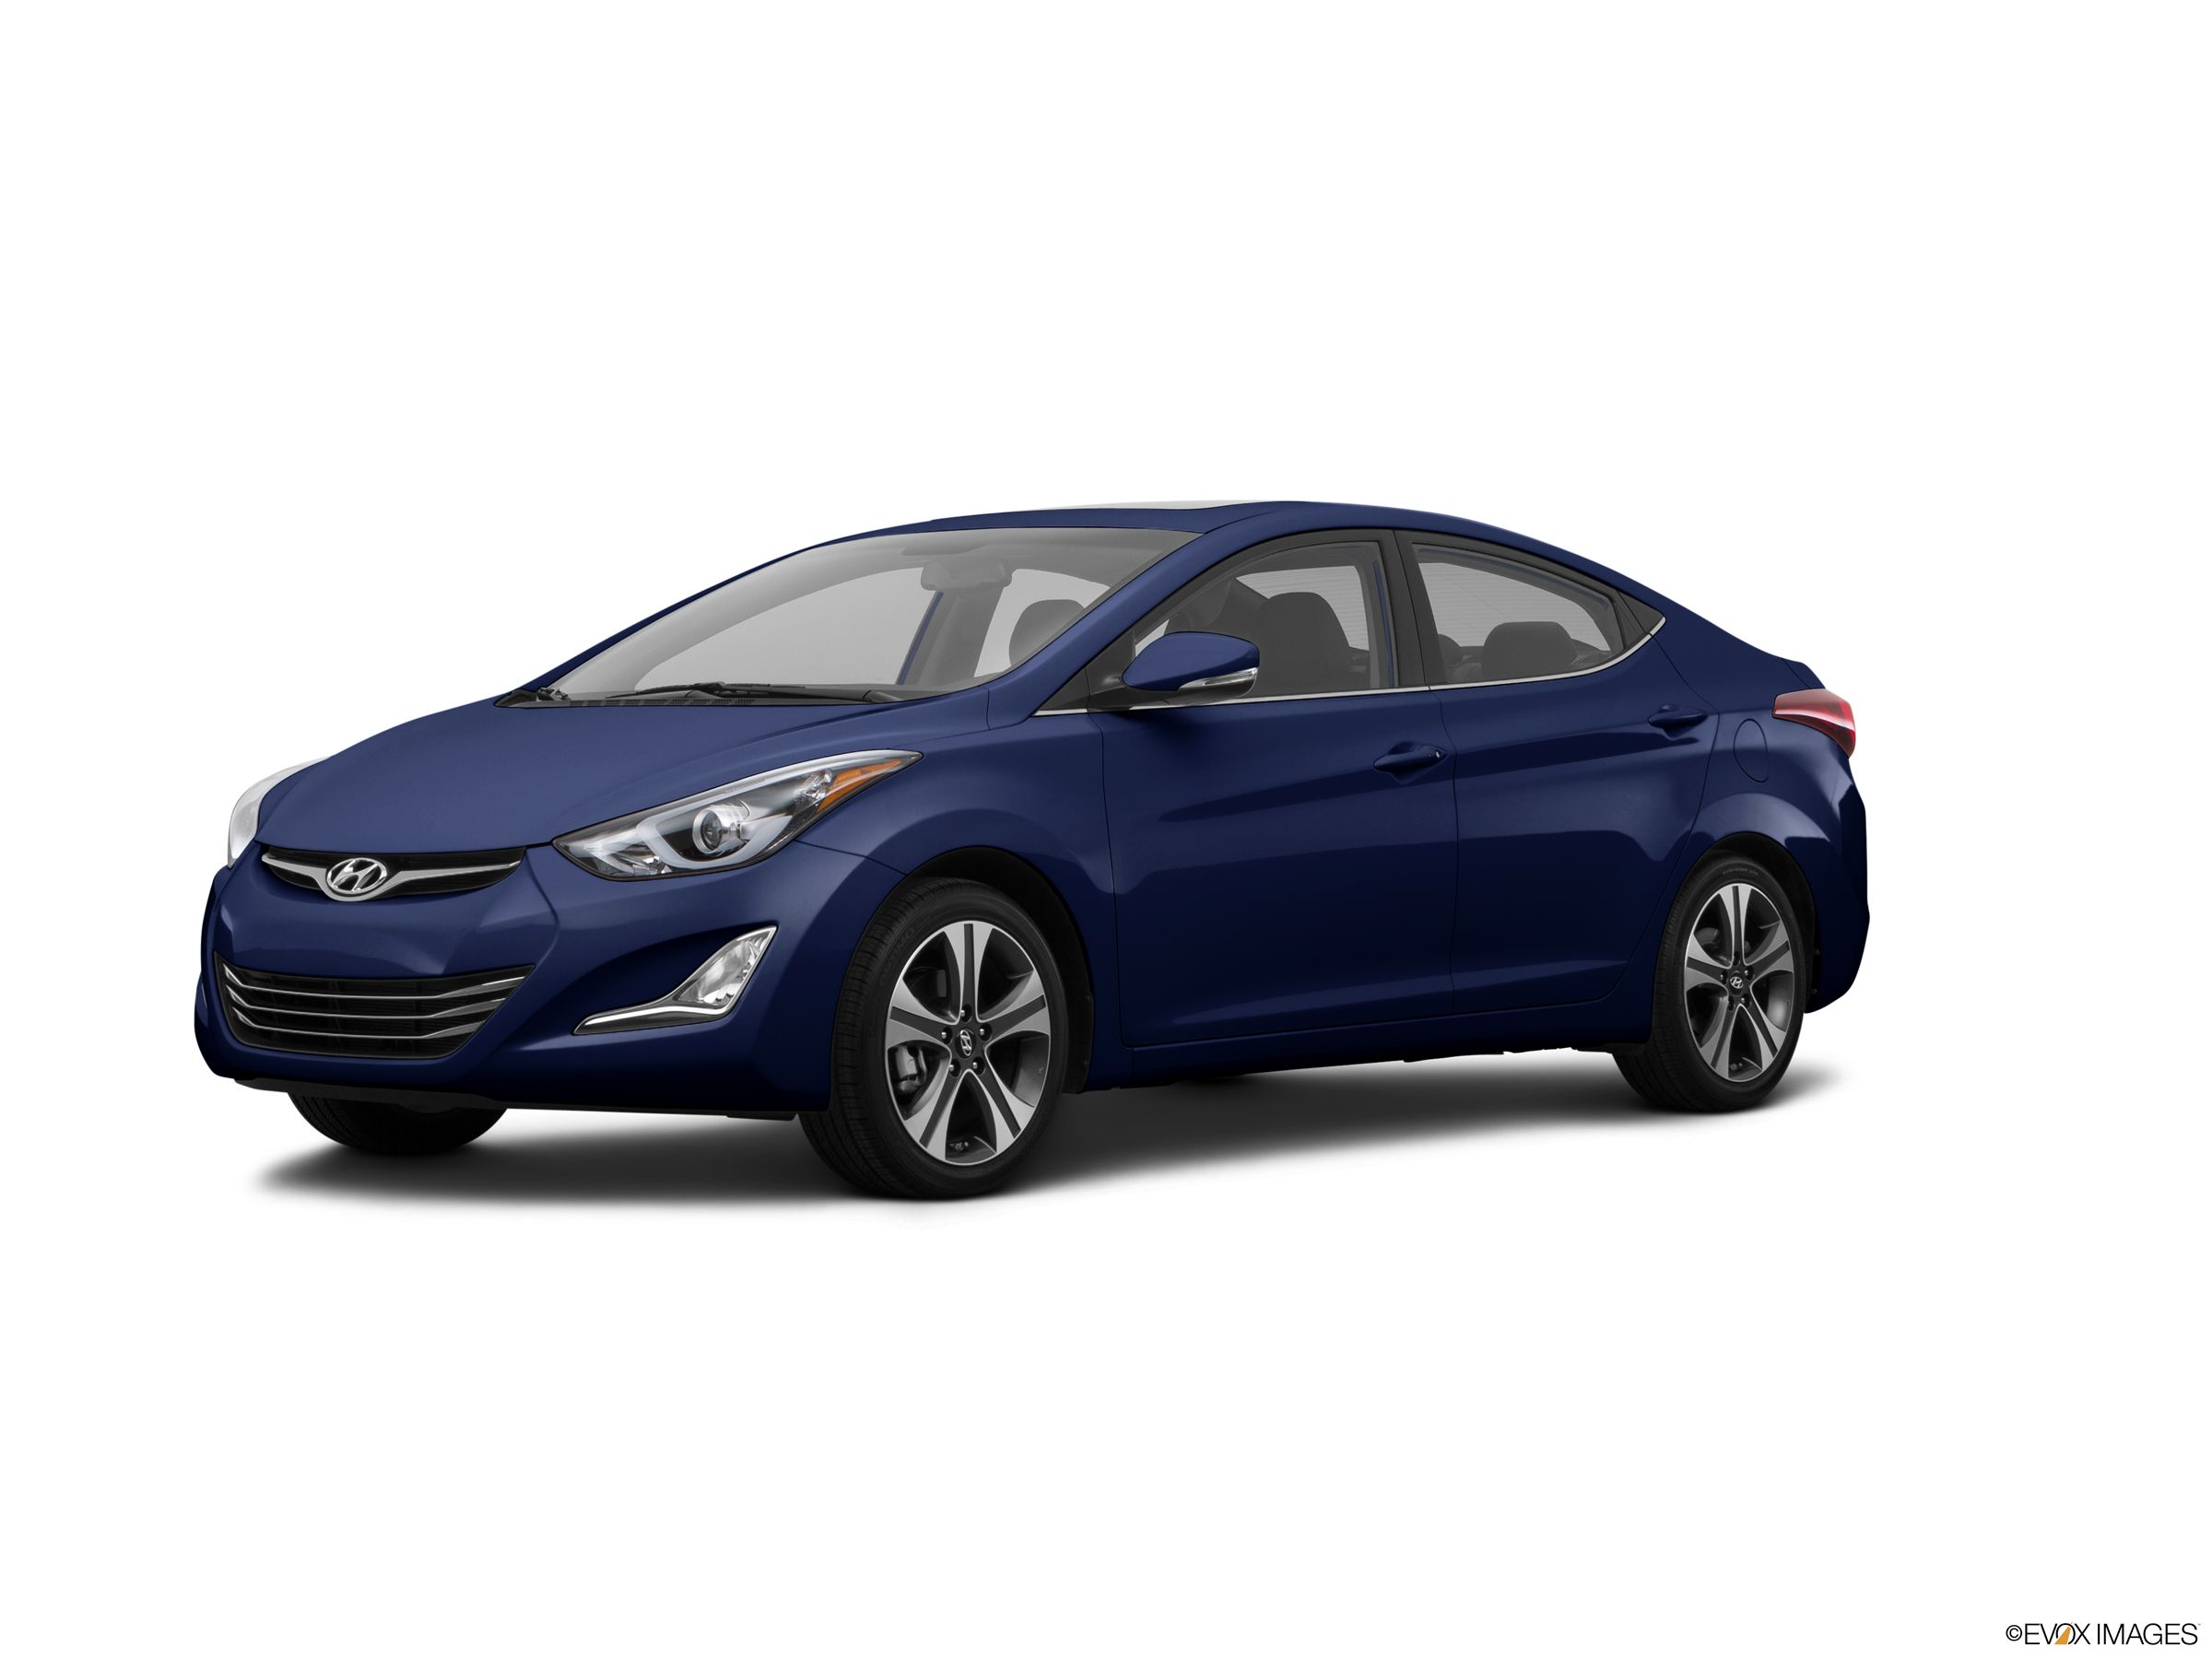 car auto experts under picks best news share roundup their driving used hyundai our